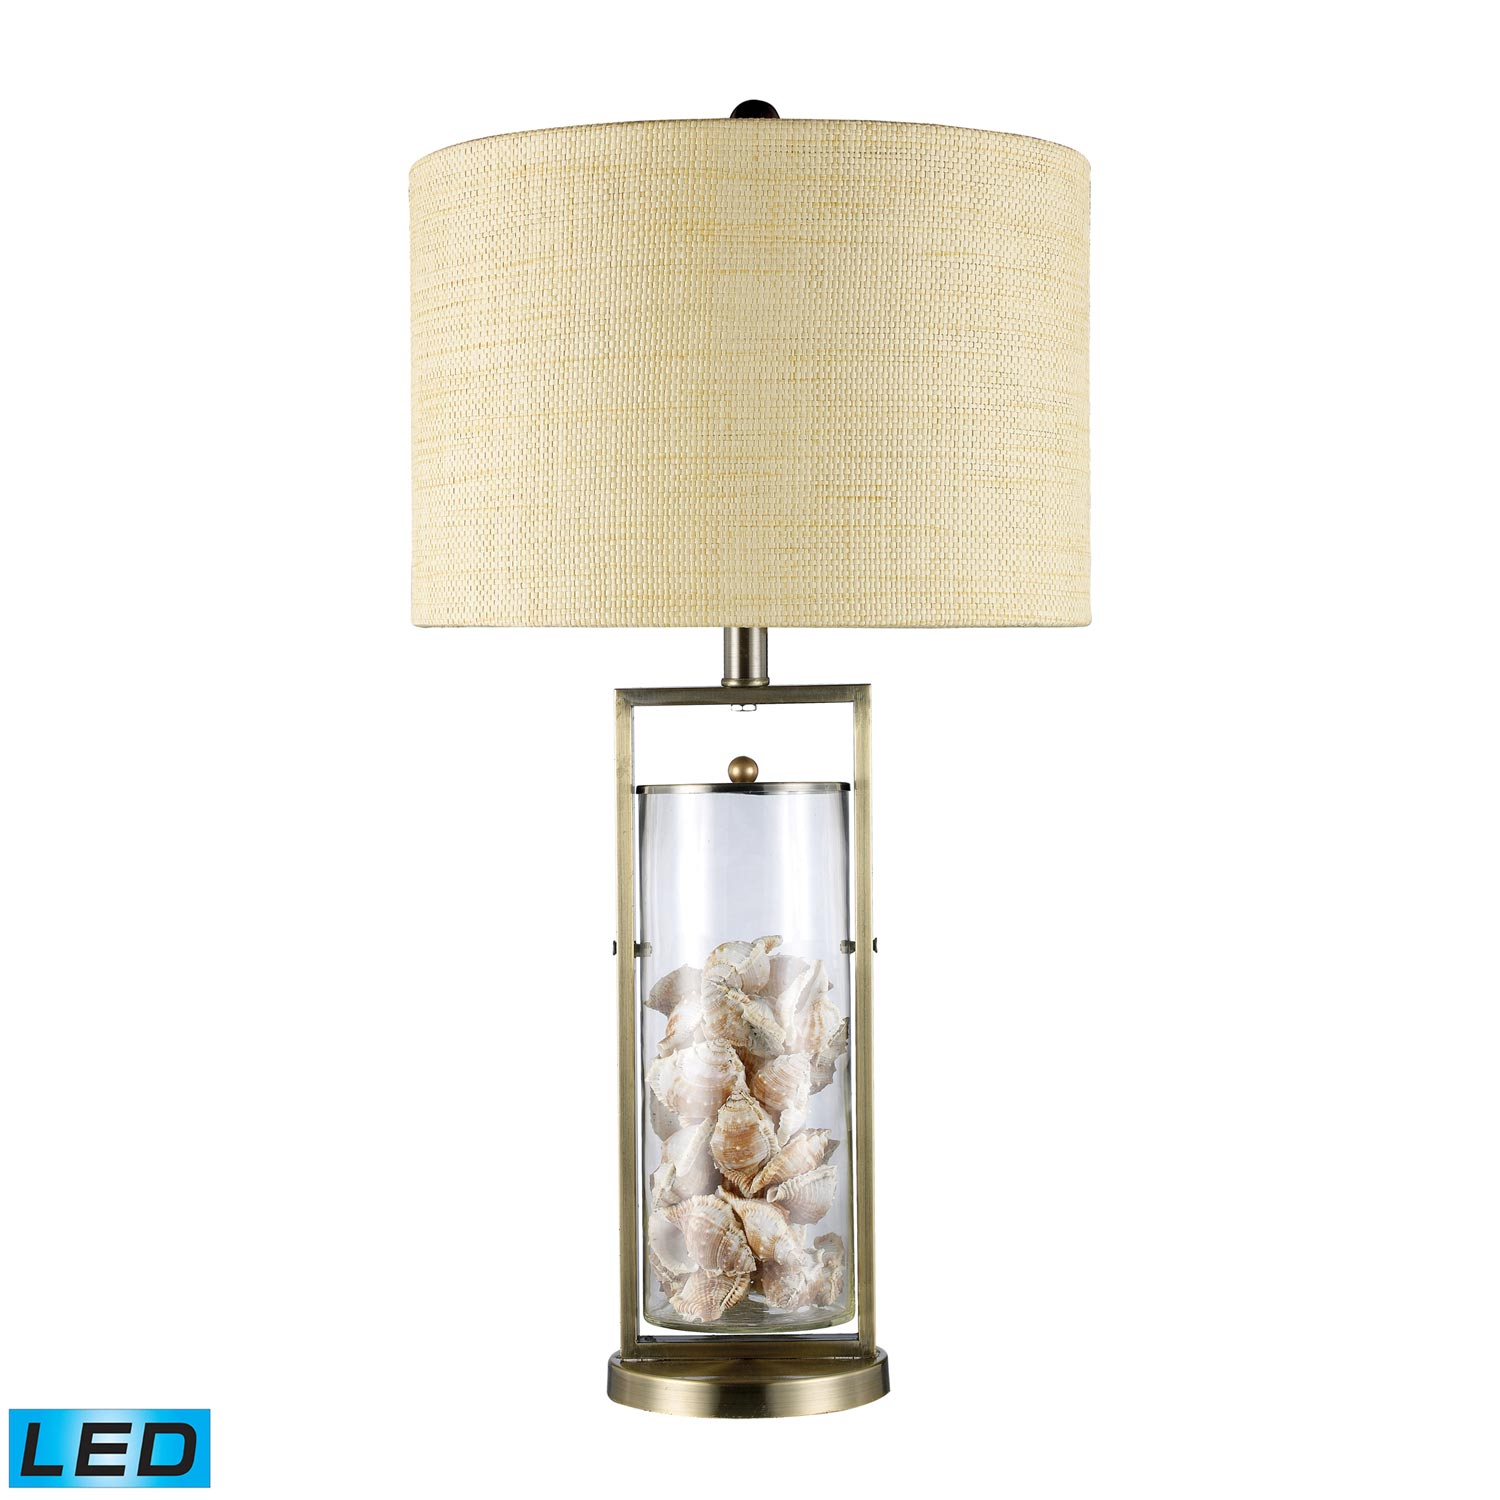 Elk Lighting D1978-LED Millisle Table Lamp - Antique Brass and Clear Glass